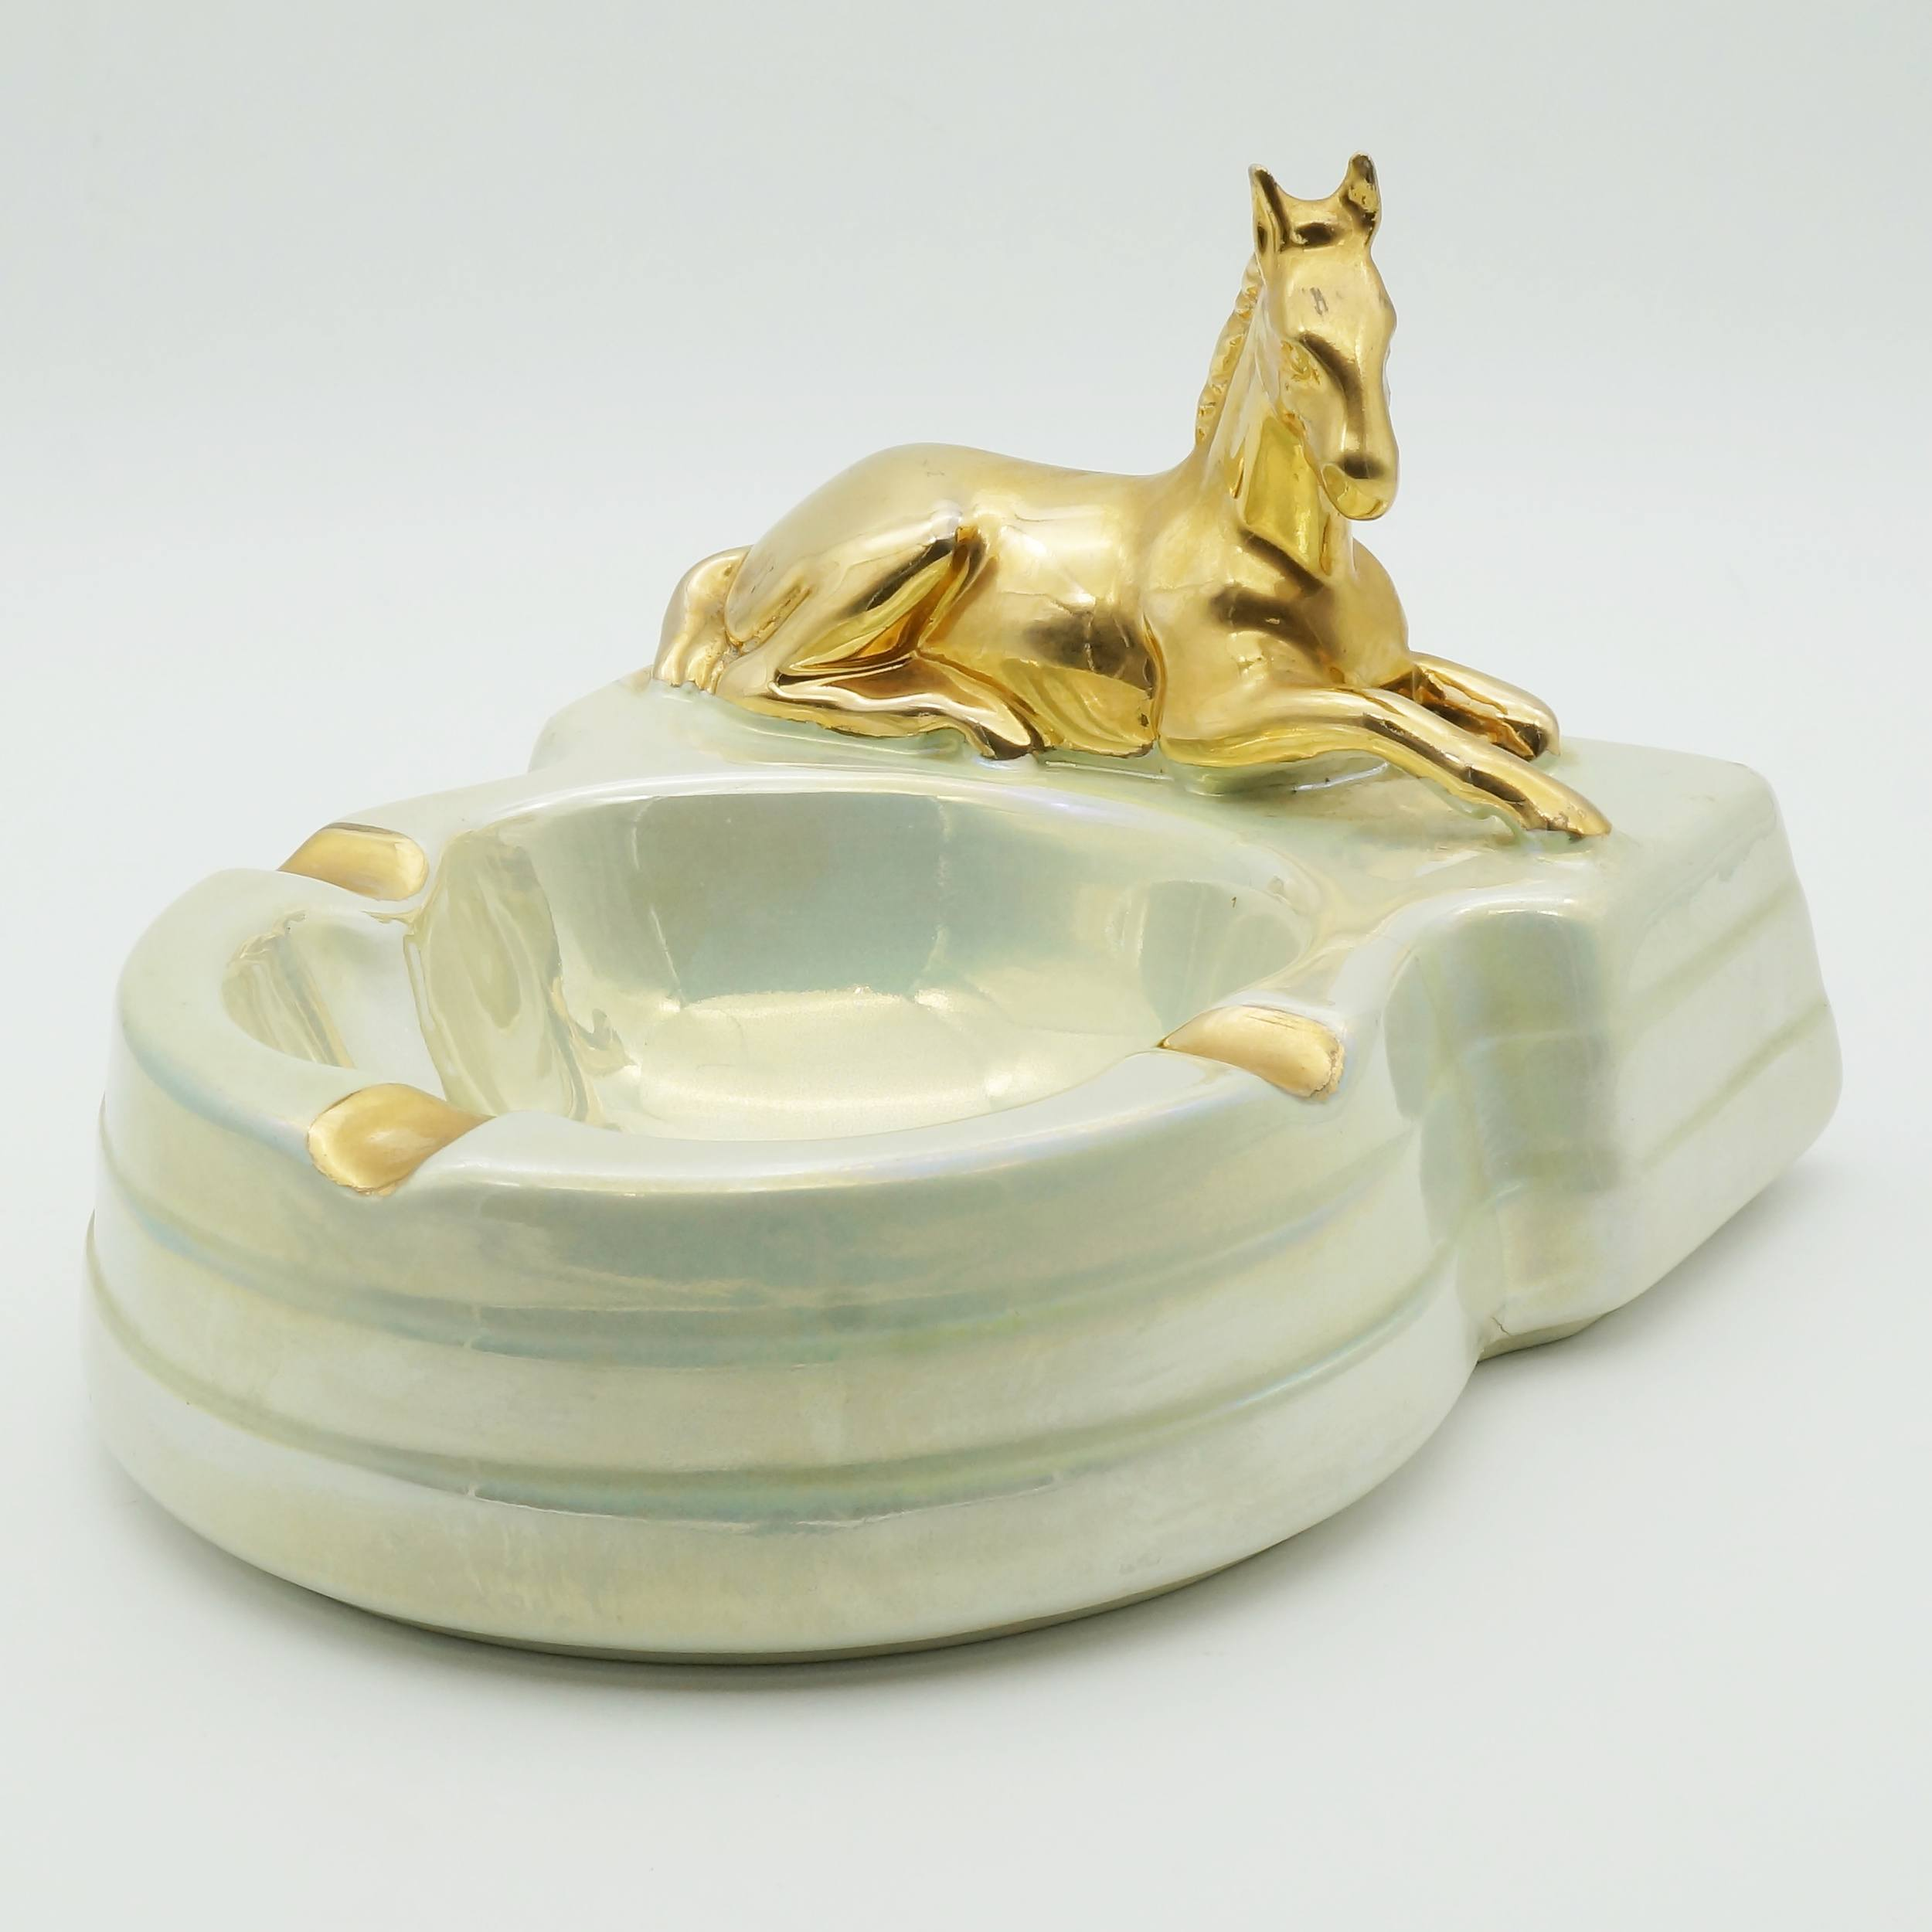 'Lustre Glazed Wembley Ware Horse Ashtray'